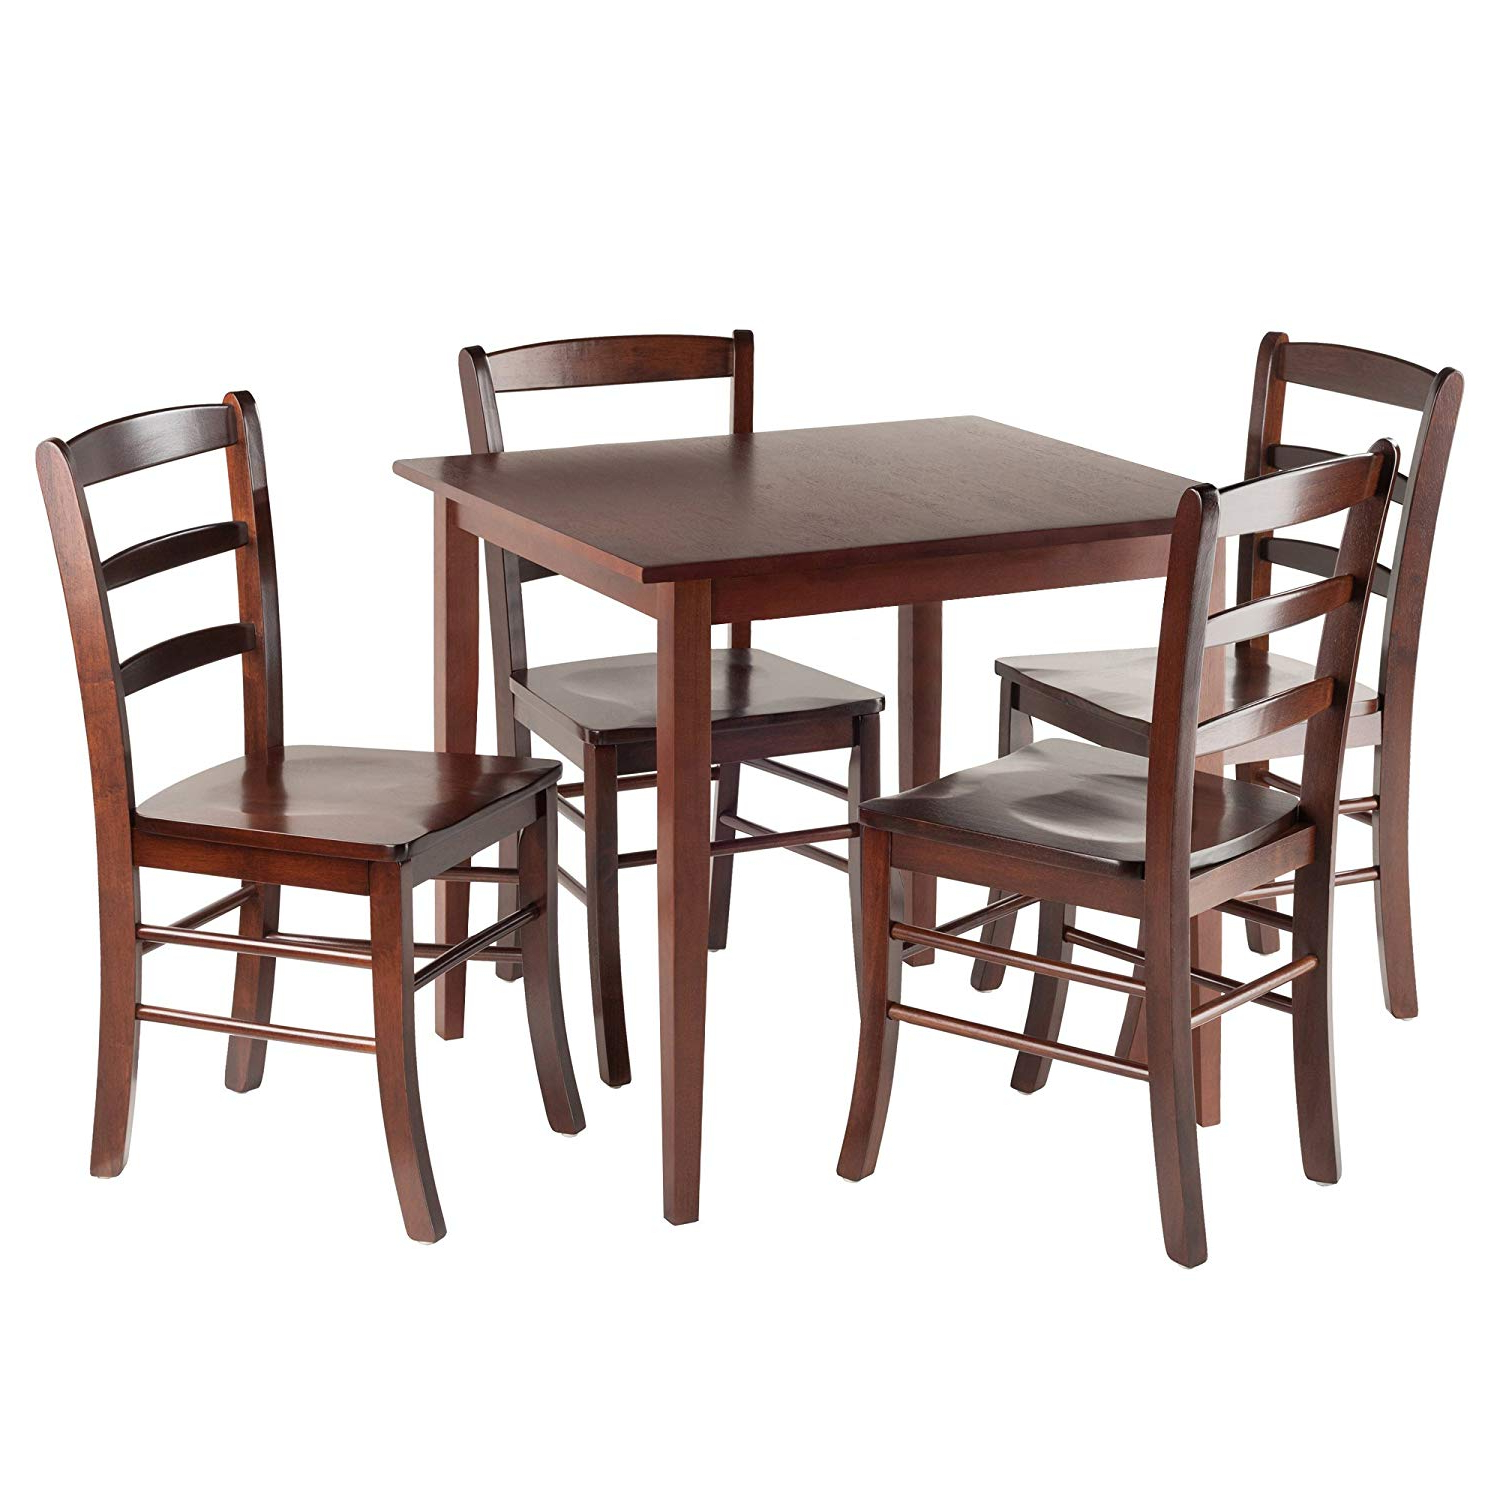 Winsome Groveland Square Dining Table, 4 Chairs, Antique Walnut Within Recent Contemporary 4 Seating Square Dining Tables (View 21 of 25)